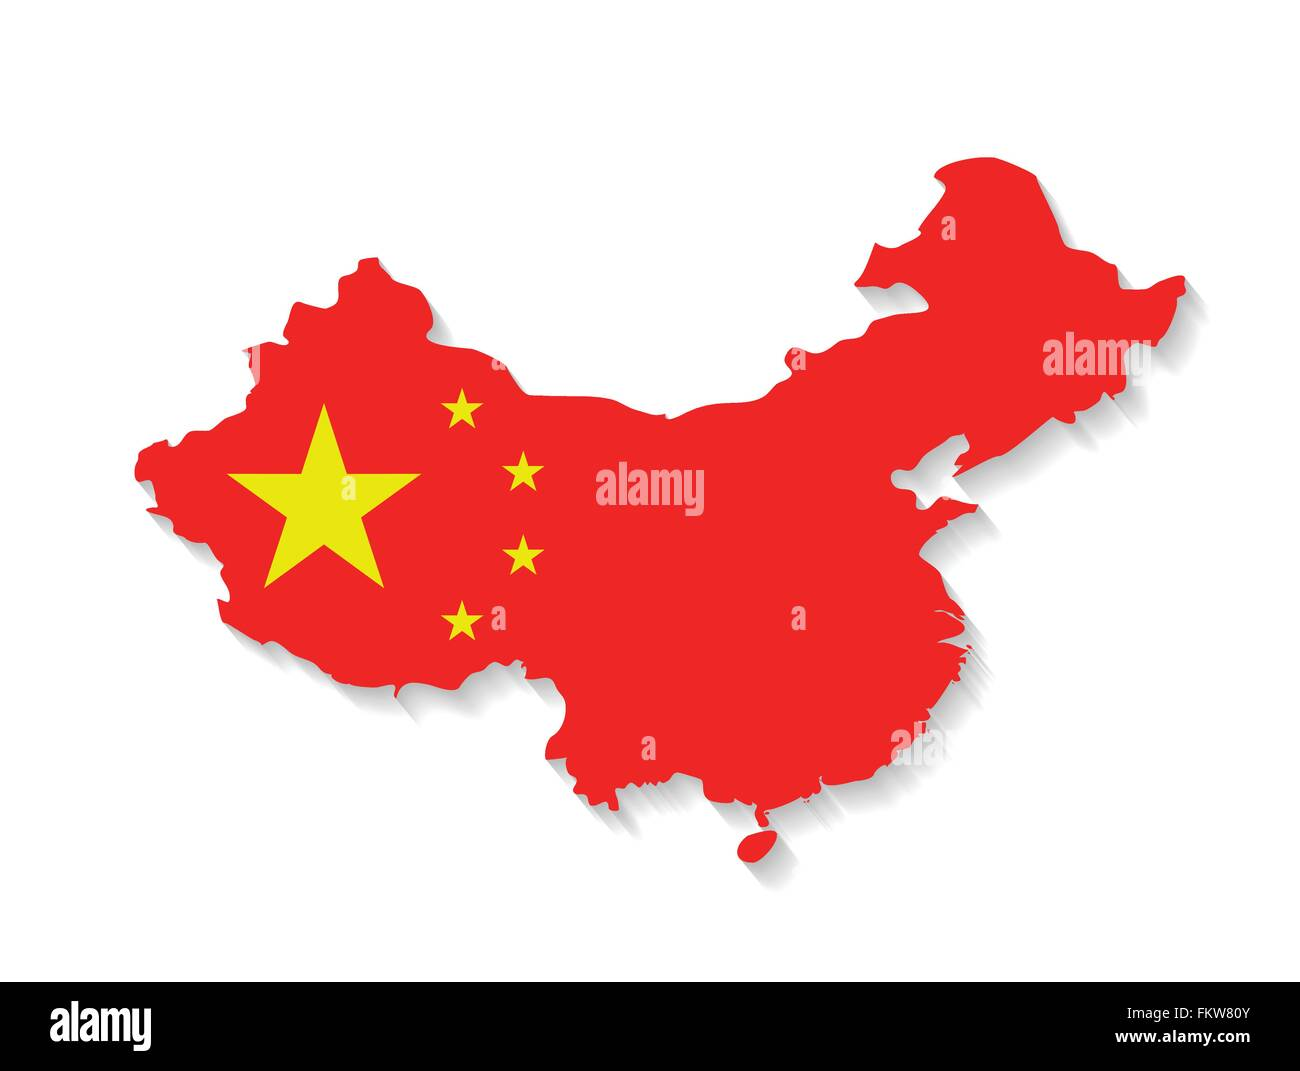 China Country Map With Flag And Shadow Effect Stock Vector Art - China map